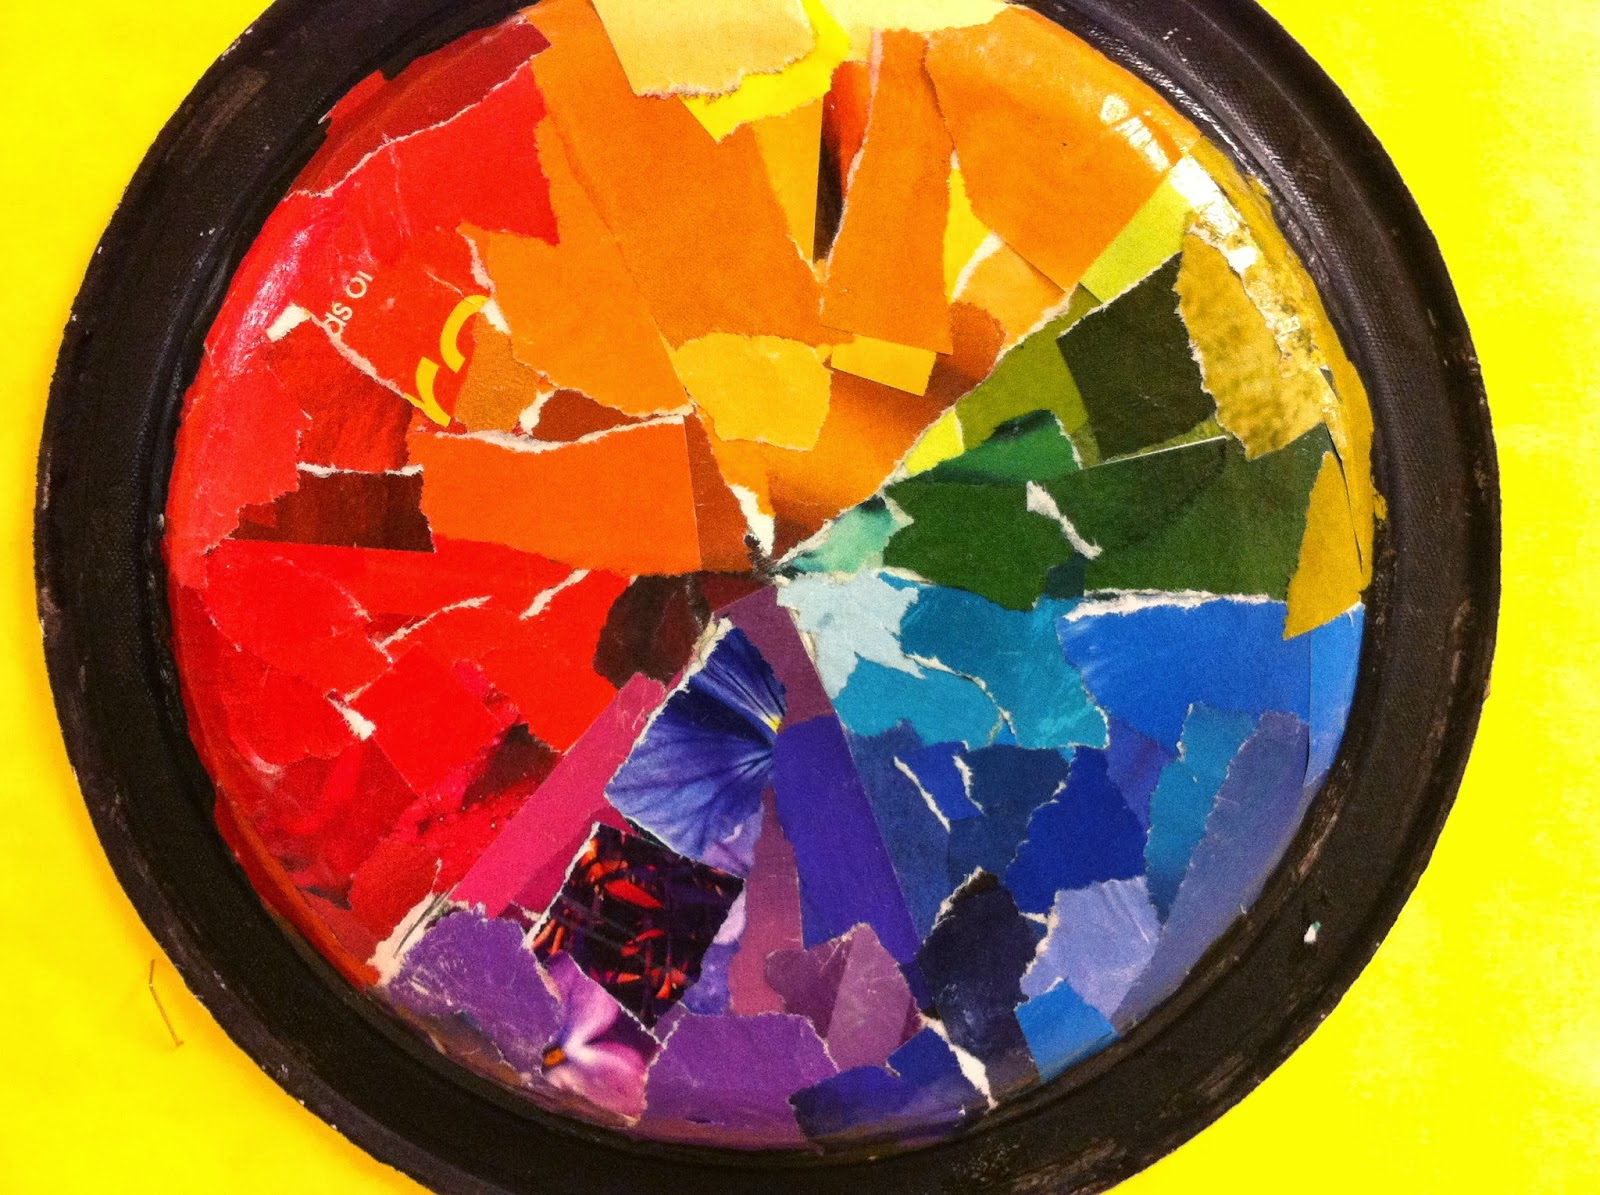 Color wheel art projects for kids - Color Wheel Plates